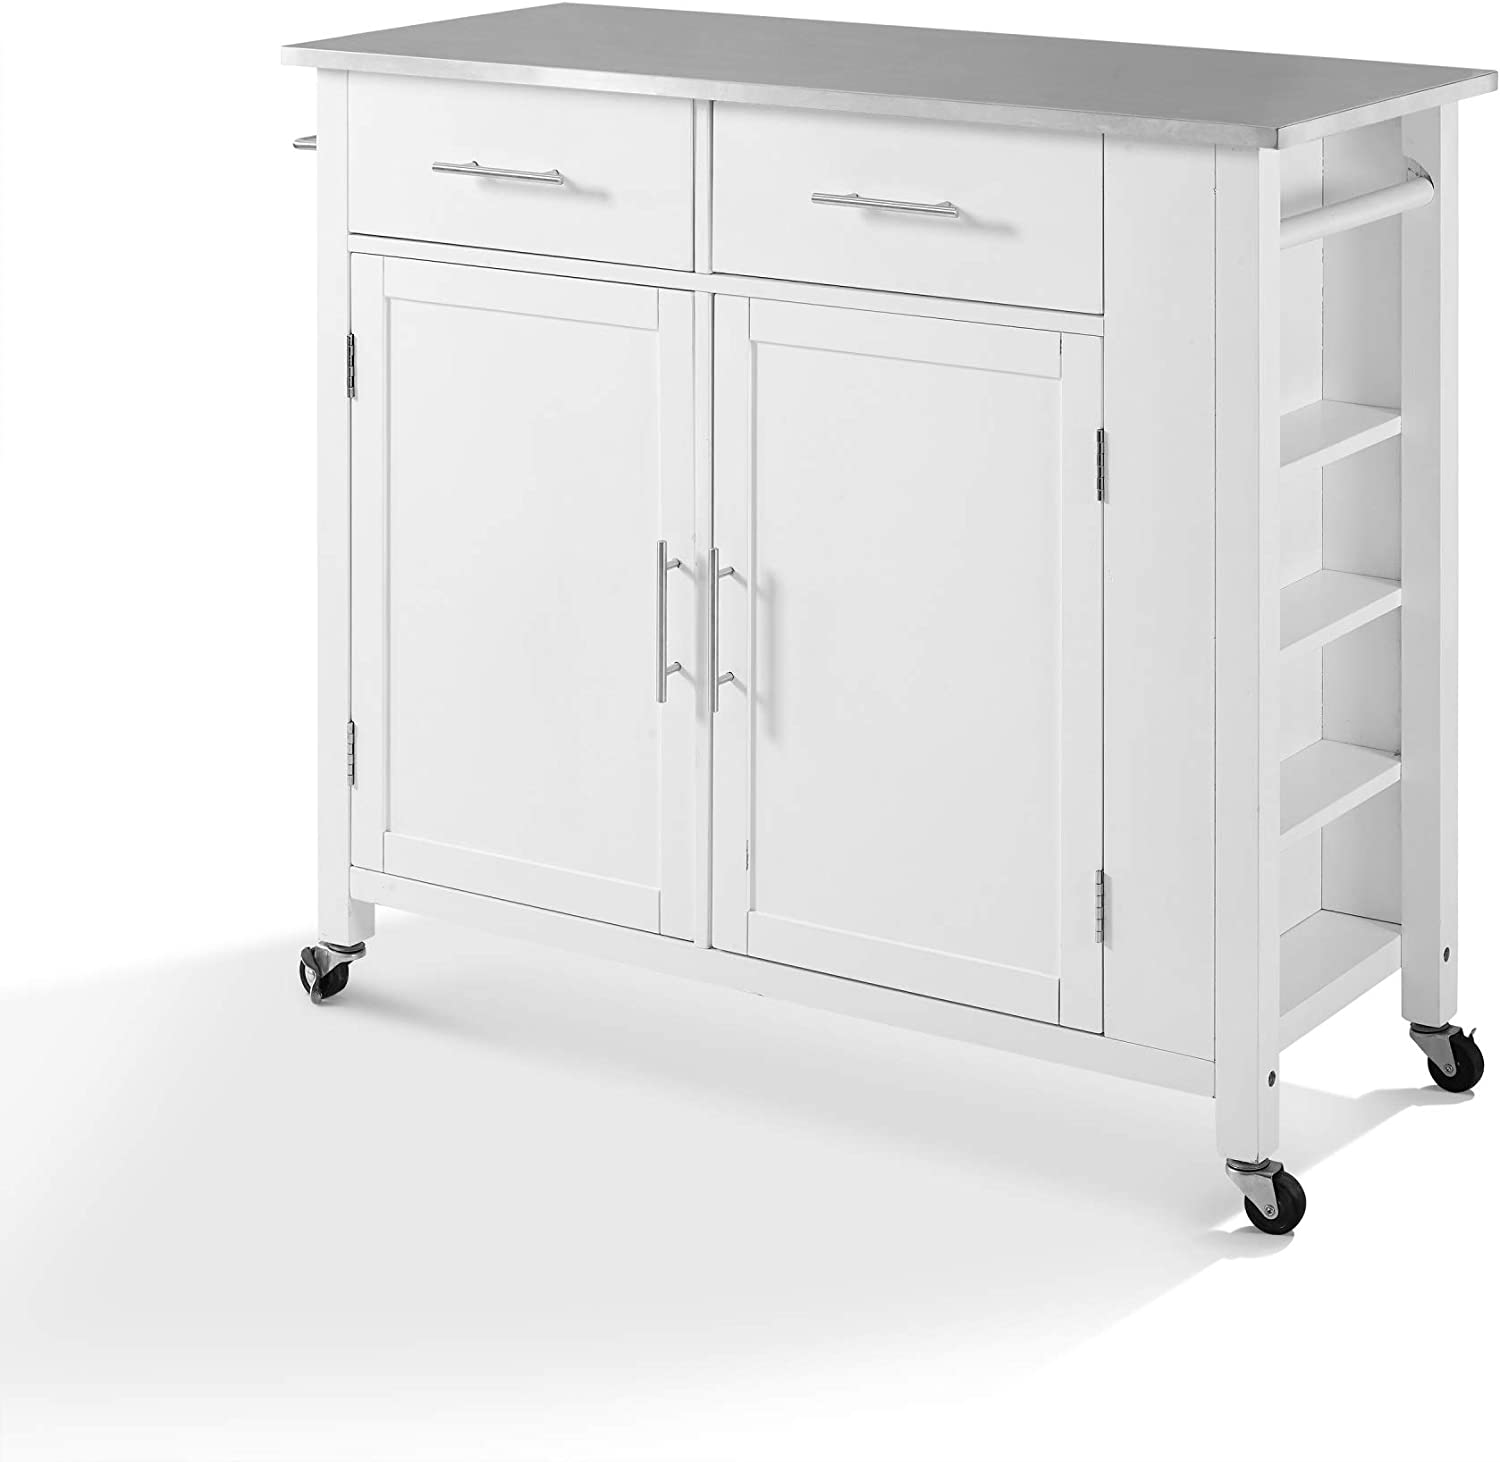 Crosley Savannah Stainless Steel Top Full-Size Kitchen Island/Cart White/Stainless Steel